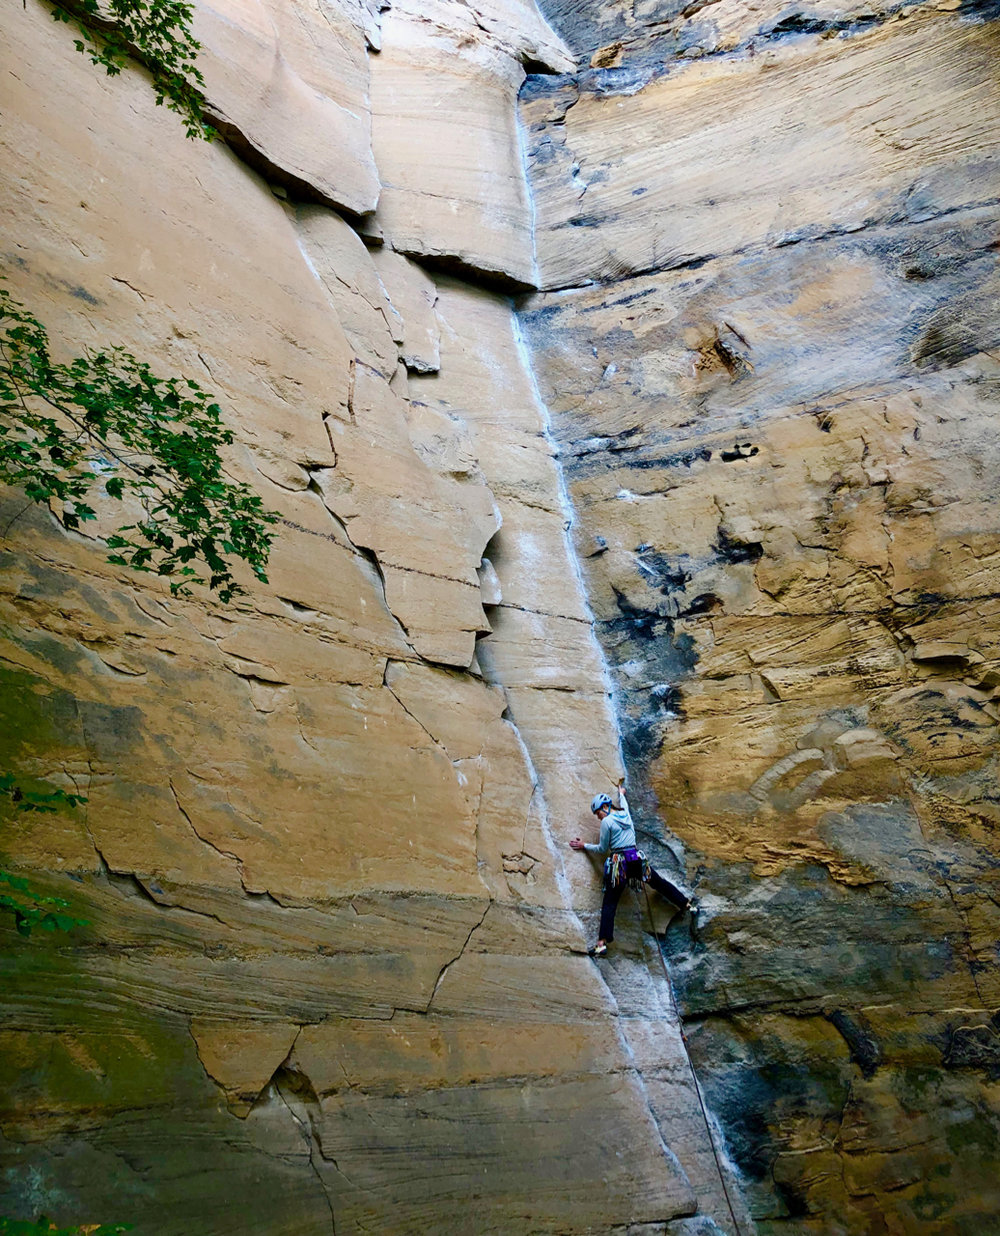 On the superb crack, Rock Wars (5.10-). One of the super classic cracks that should not be missed.